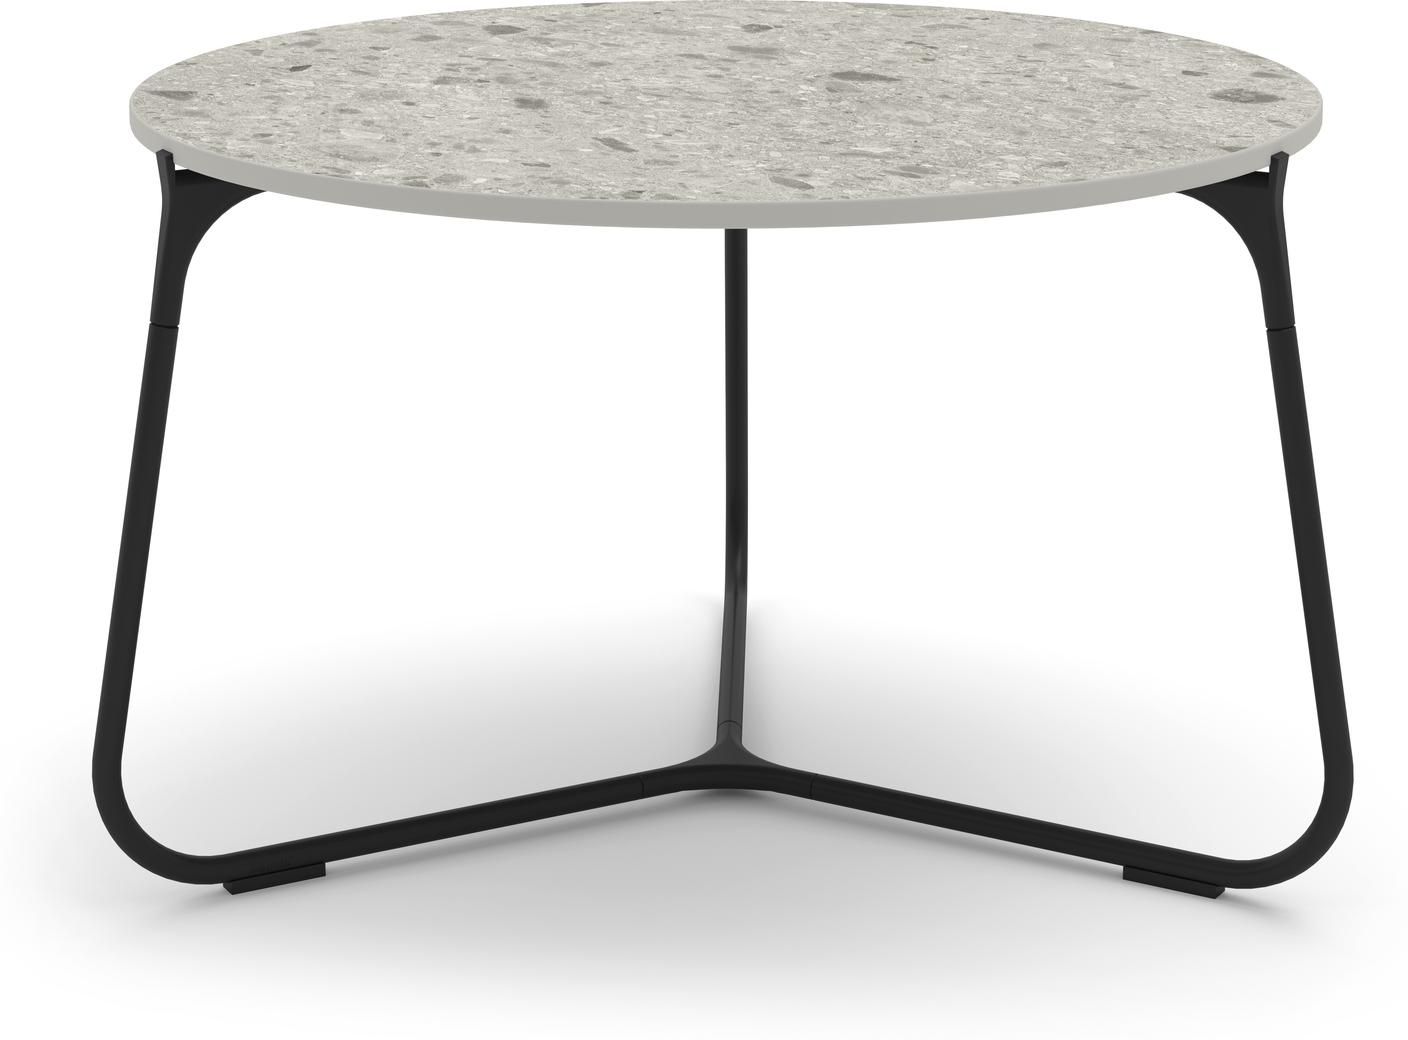 Mood coffee table 60 - lava - ceramic fossil